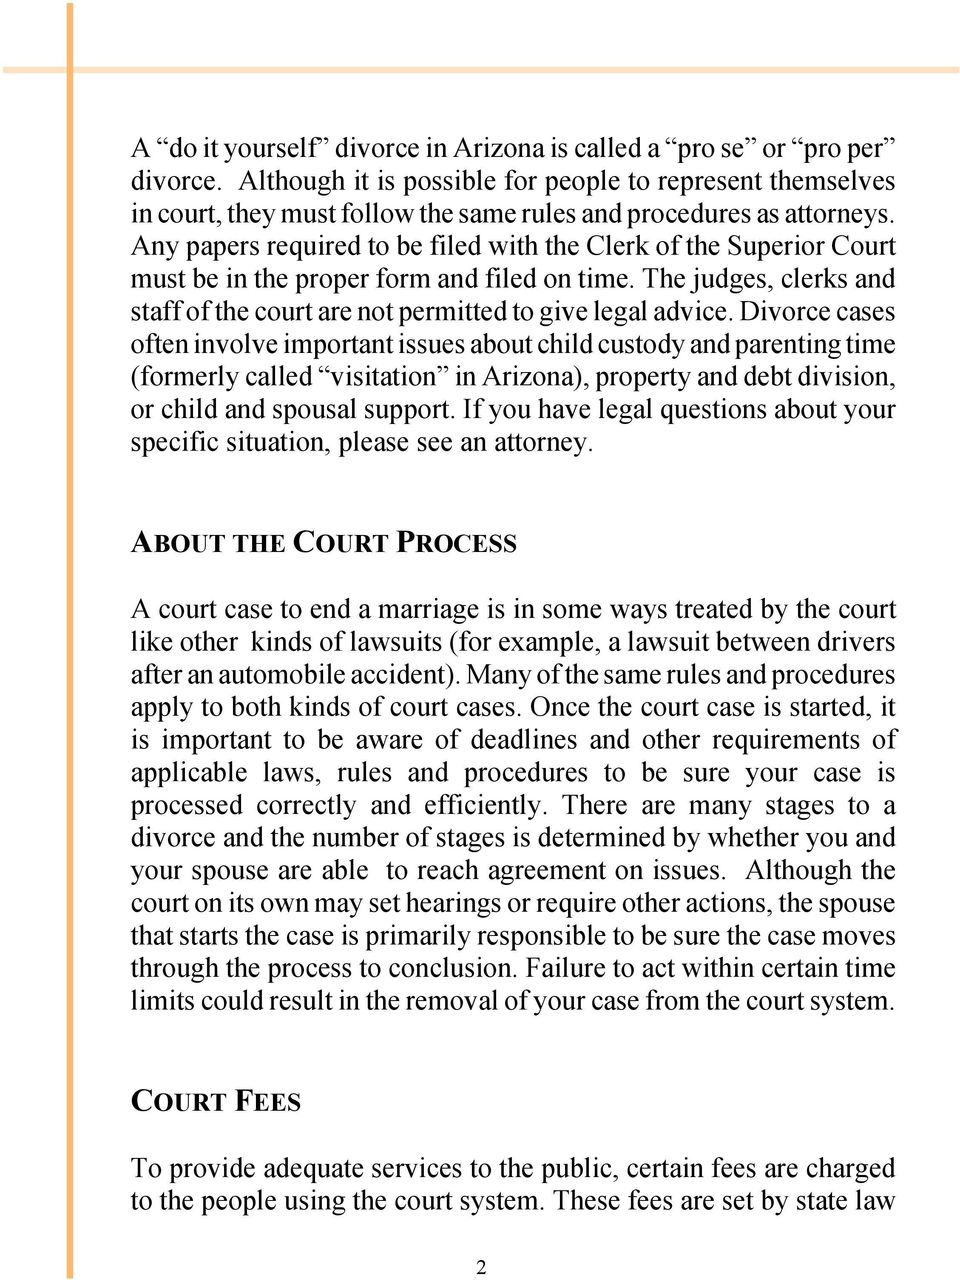 Any papers required to be filed with the Clerk of the Superior Court must be in the proper form and filed on time. The judges, clerks and staff of the court are not permitted to give legal advice.